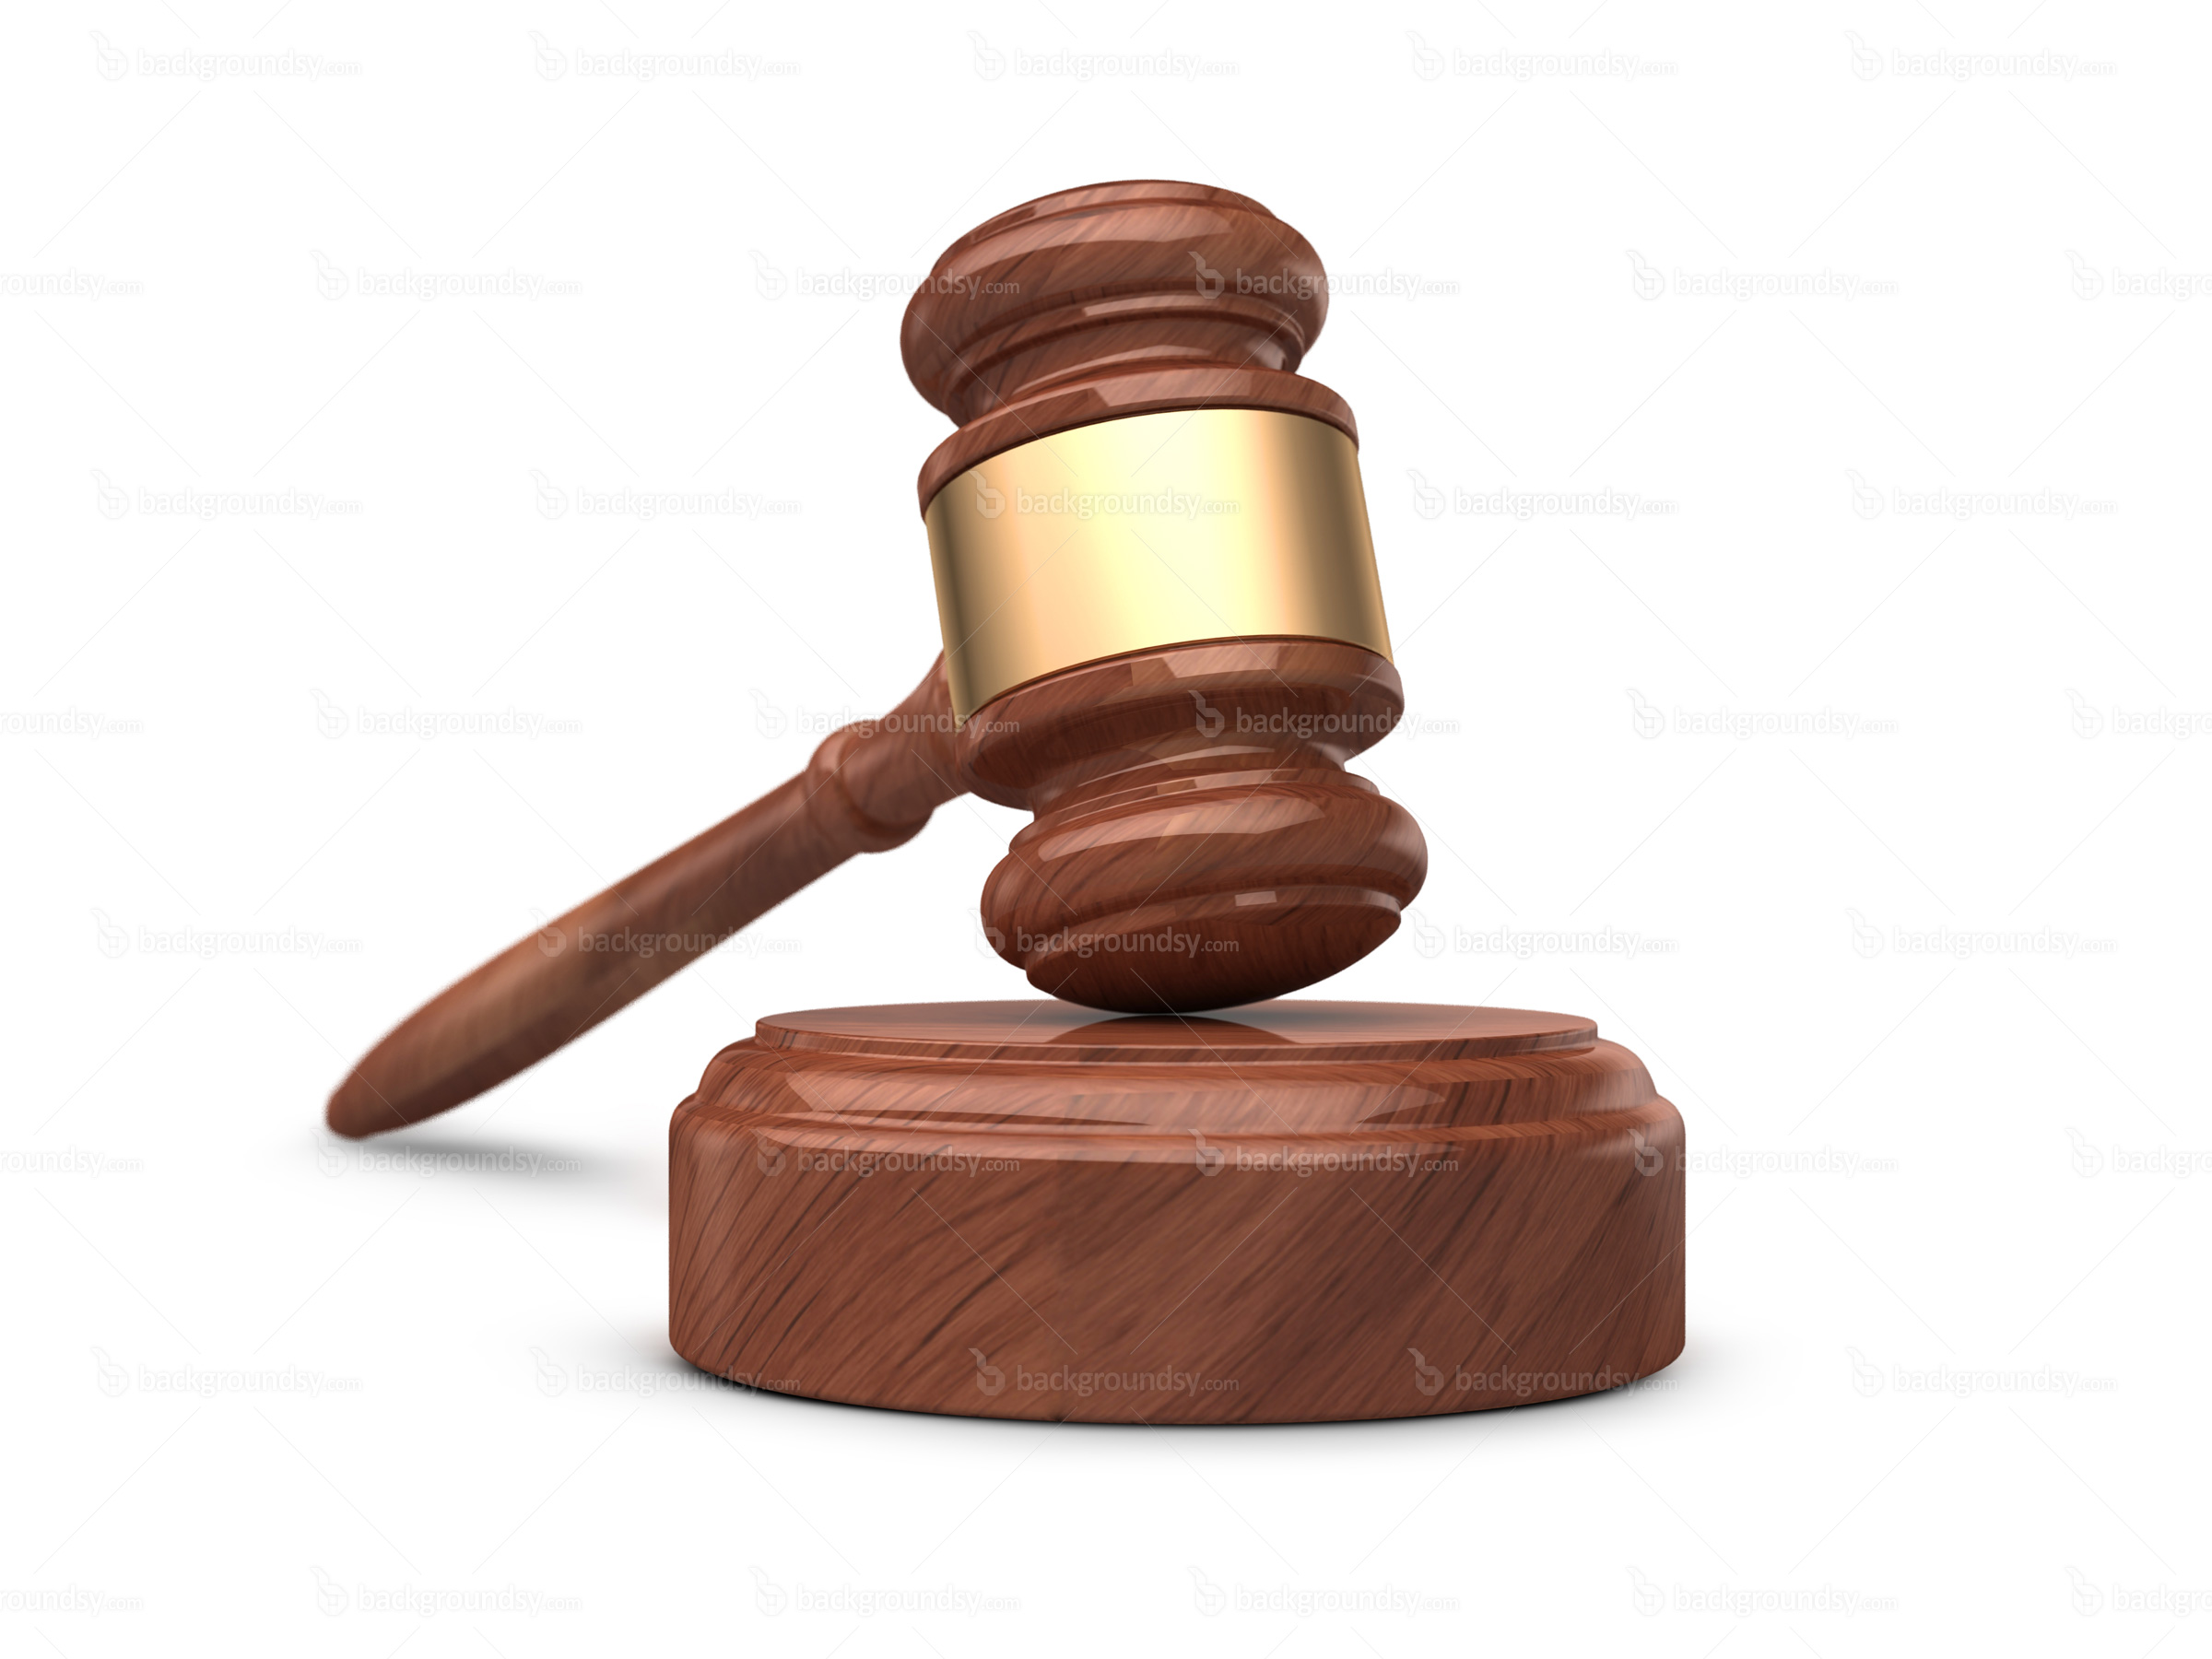 Gavel And Sound Block - Gavel, Transparent background PNG HD thumbnail